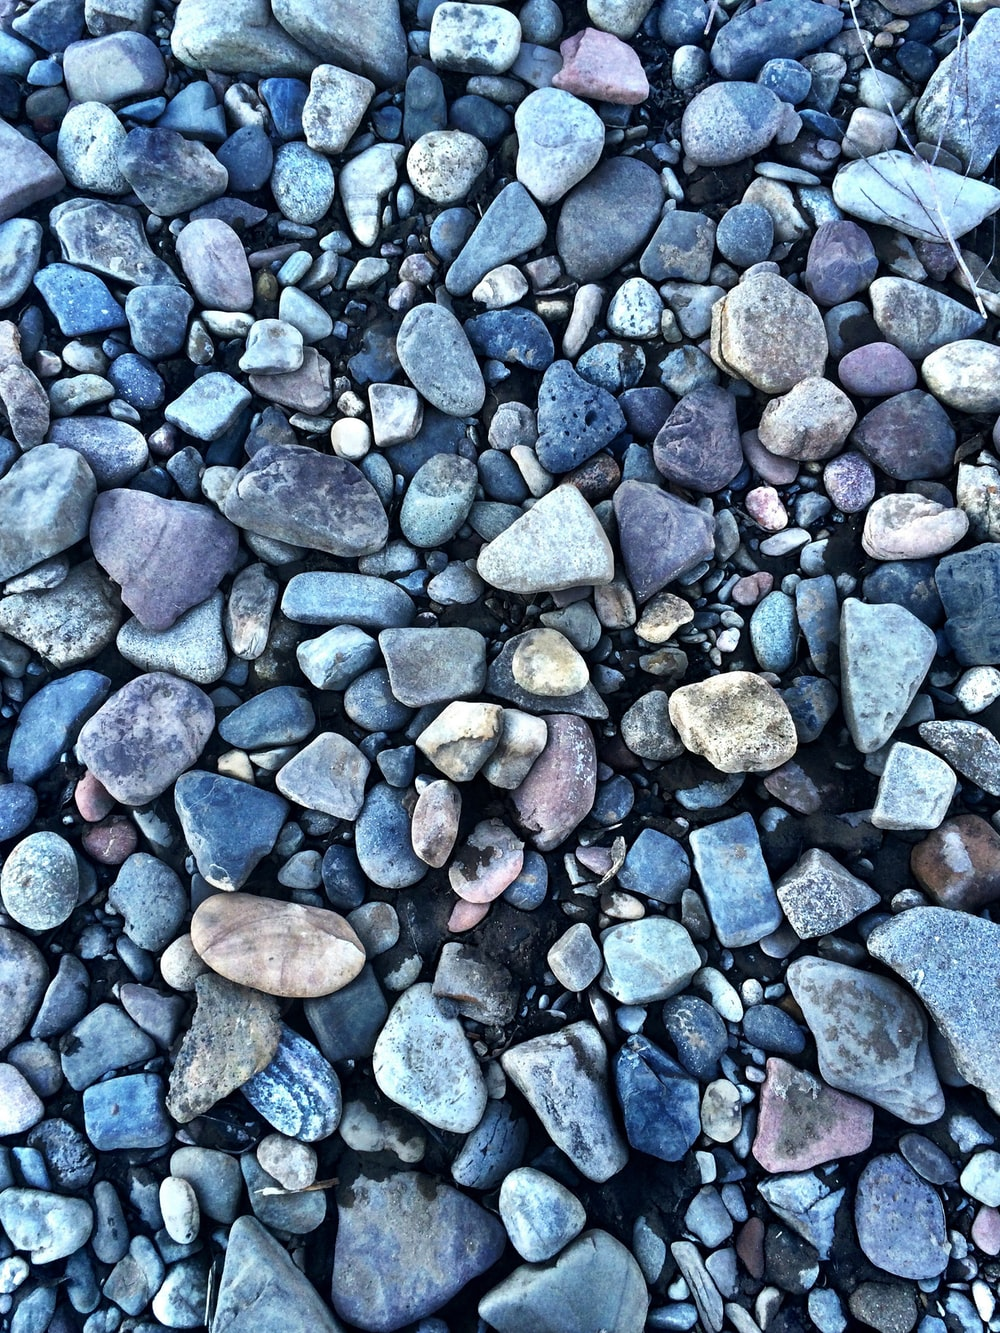 brown and gray stones on gray stones